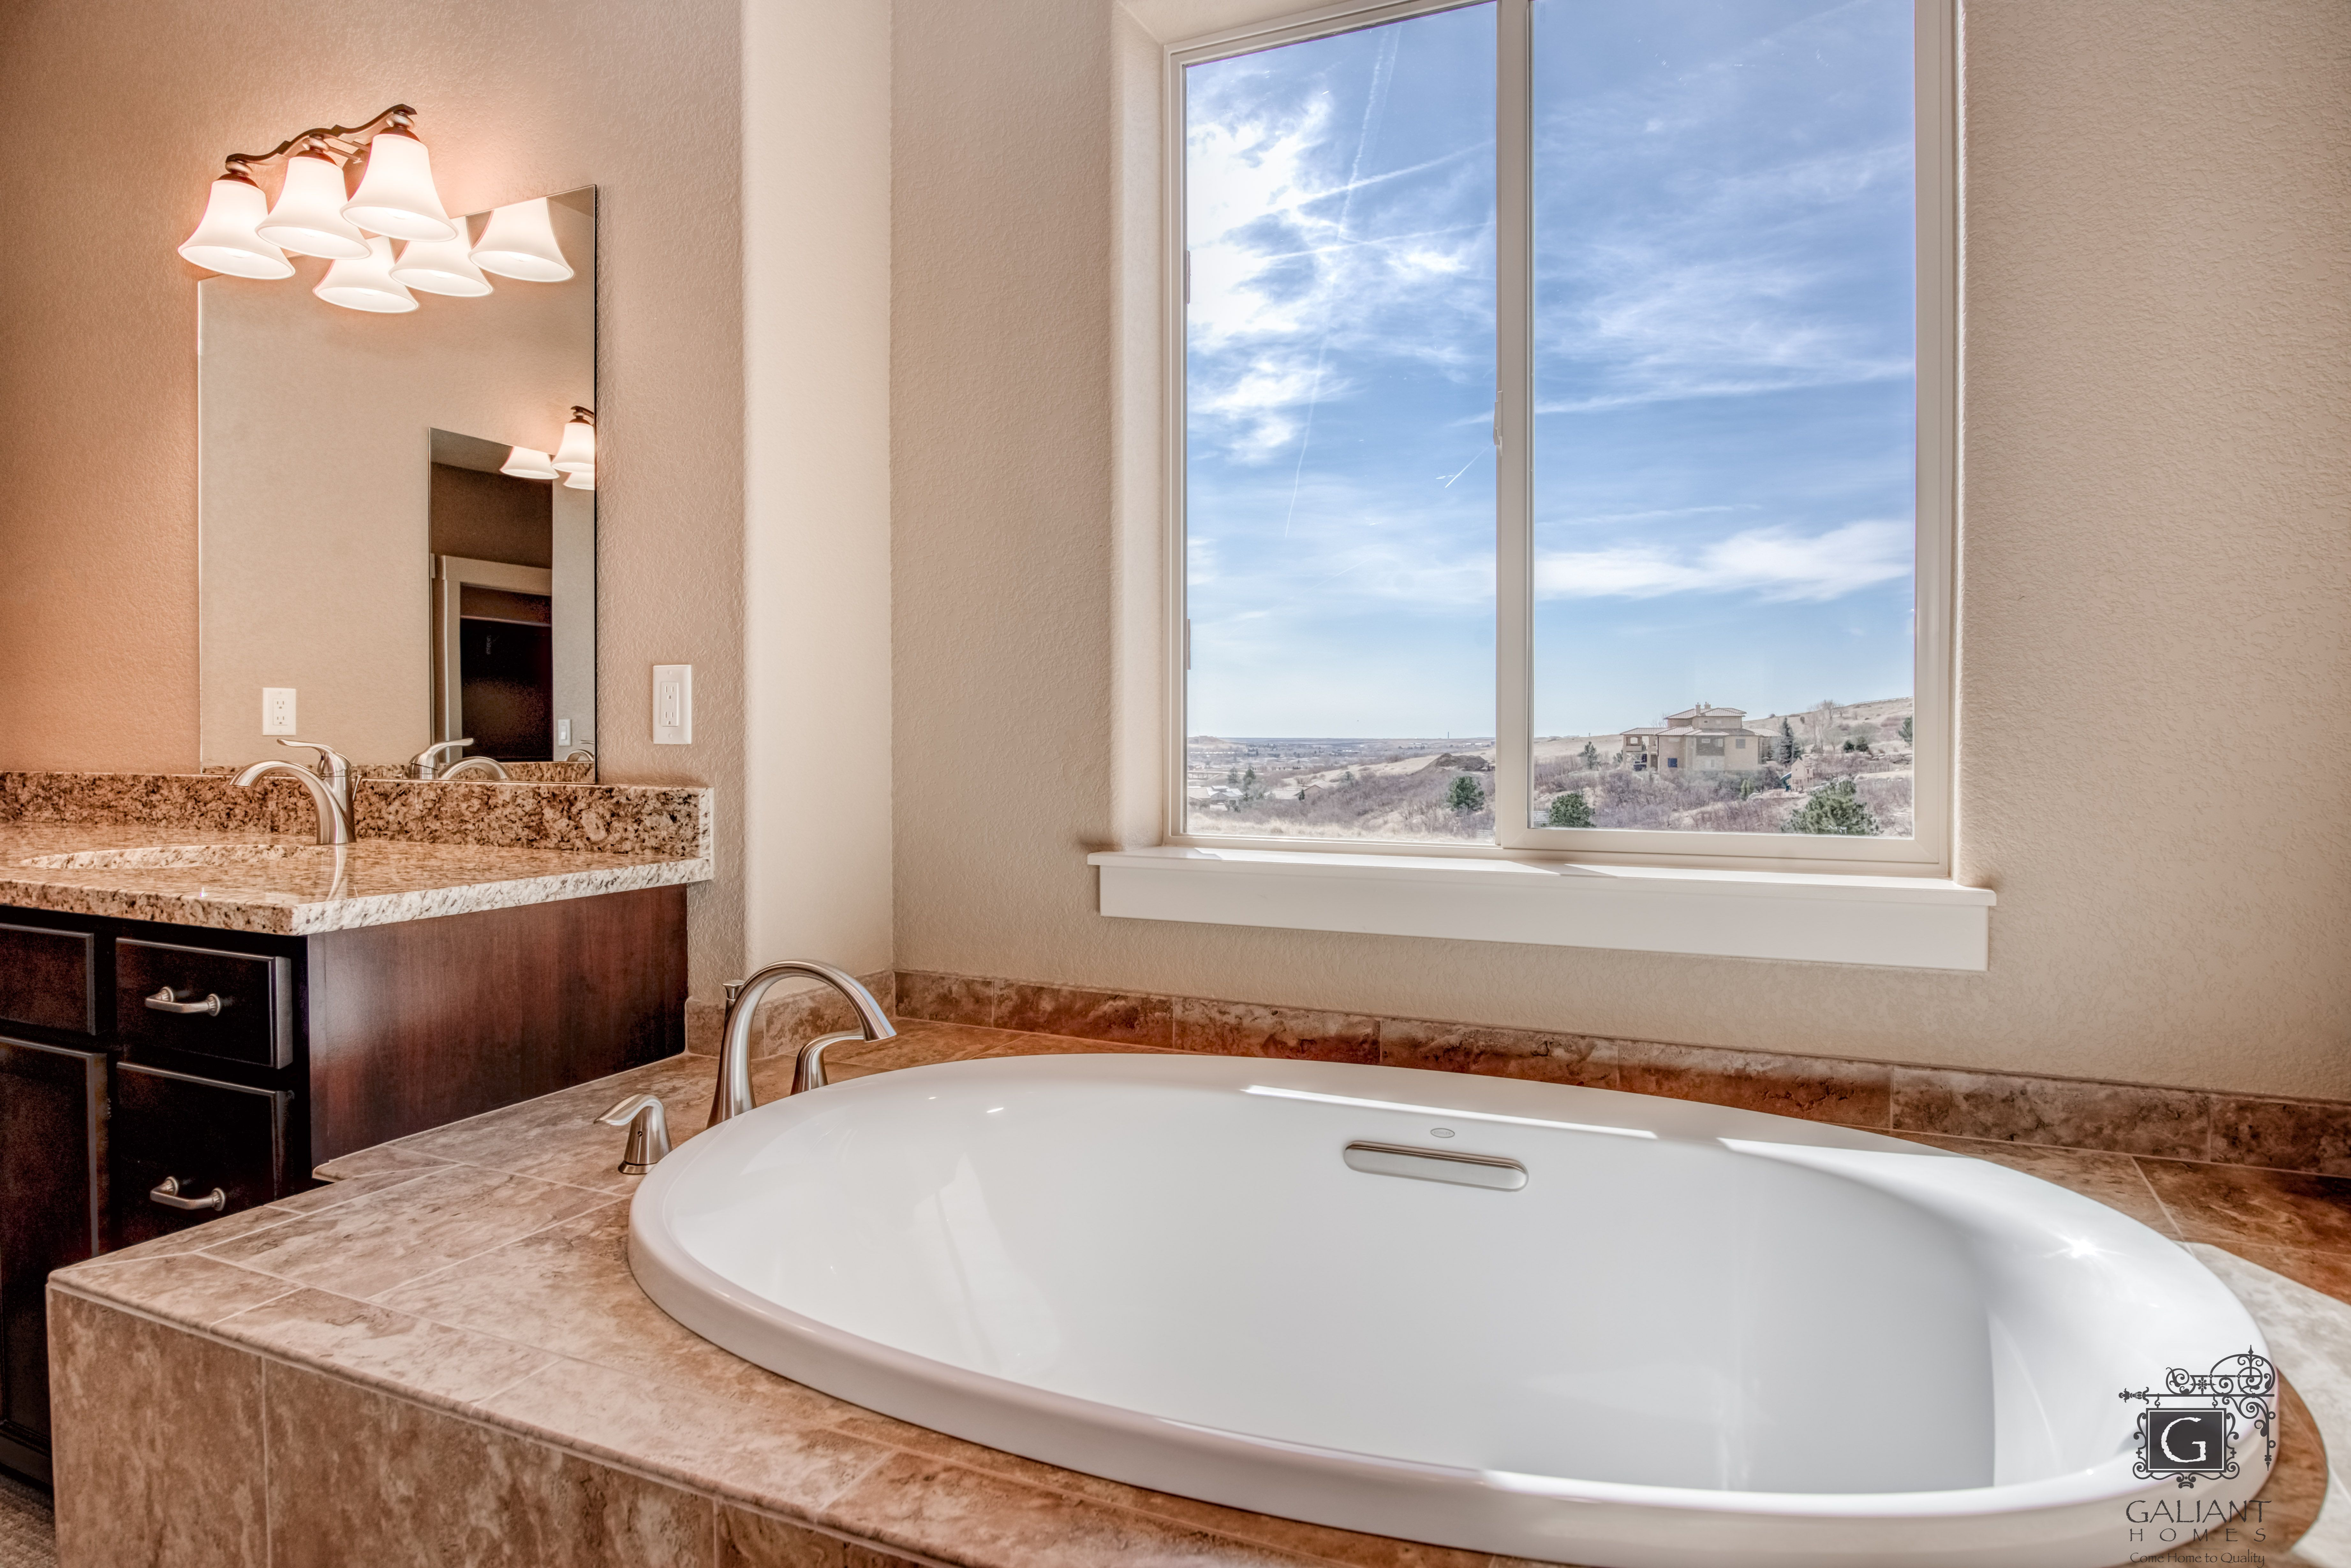 Bathroom featured in the Intrepid (Unfinished Basement) By Galiant Homes in Colorado Springs, CO